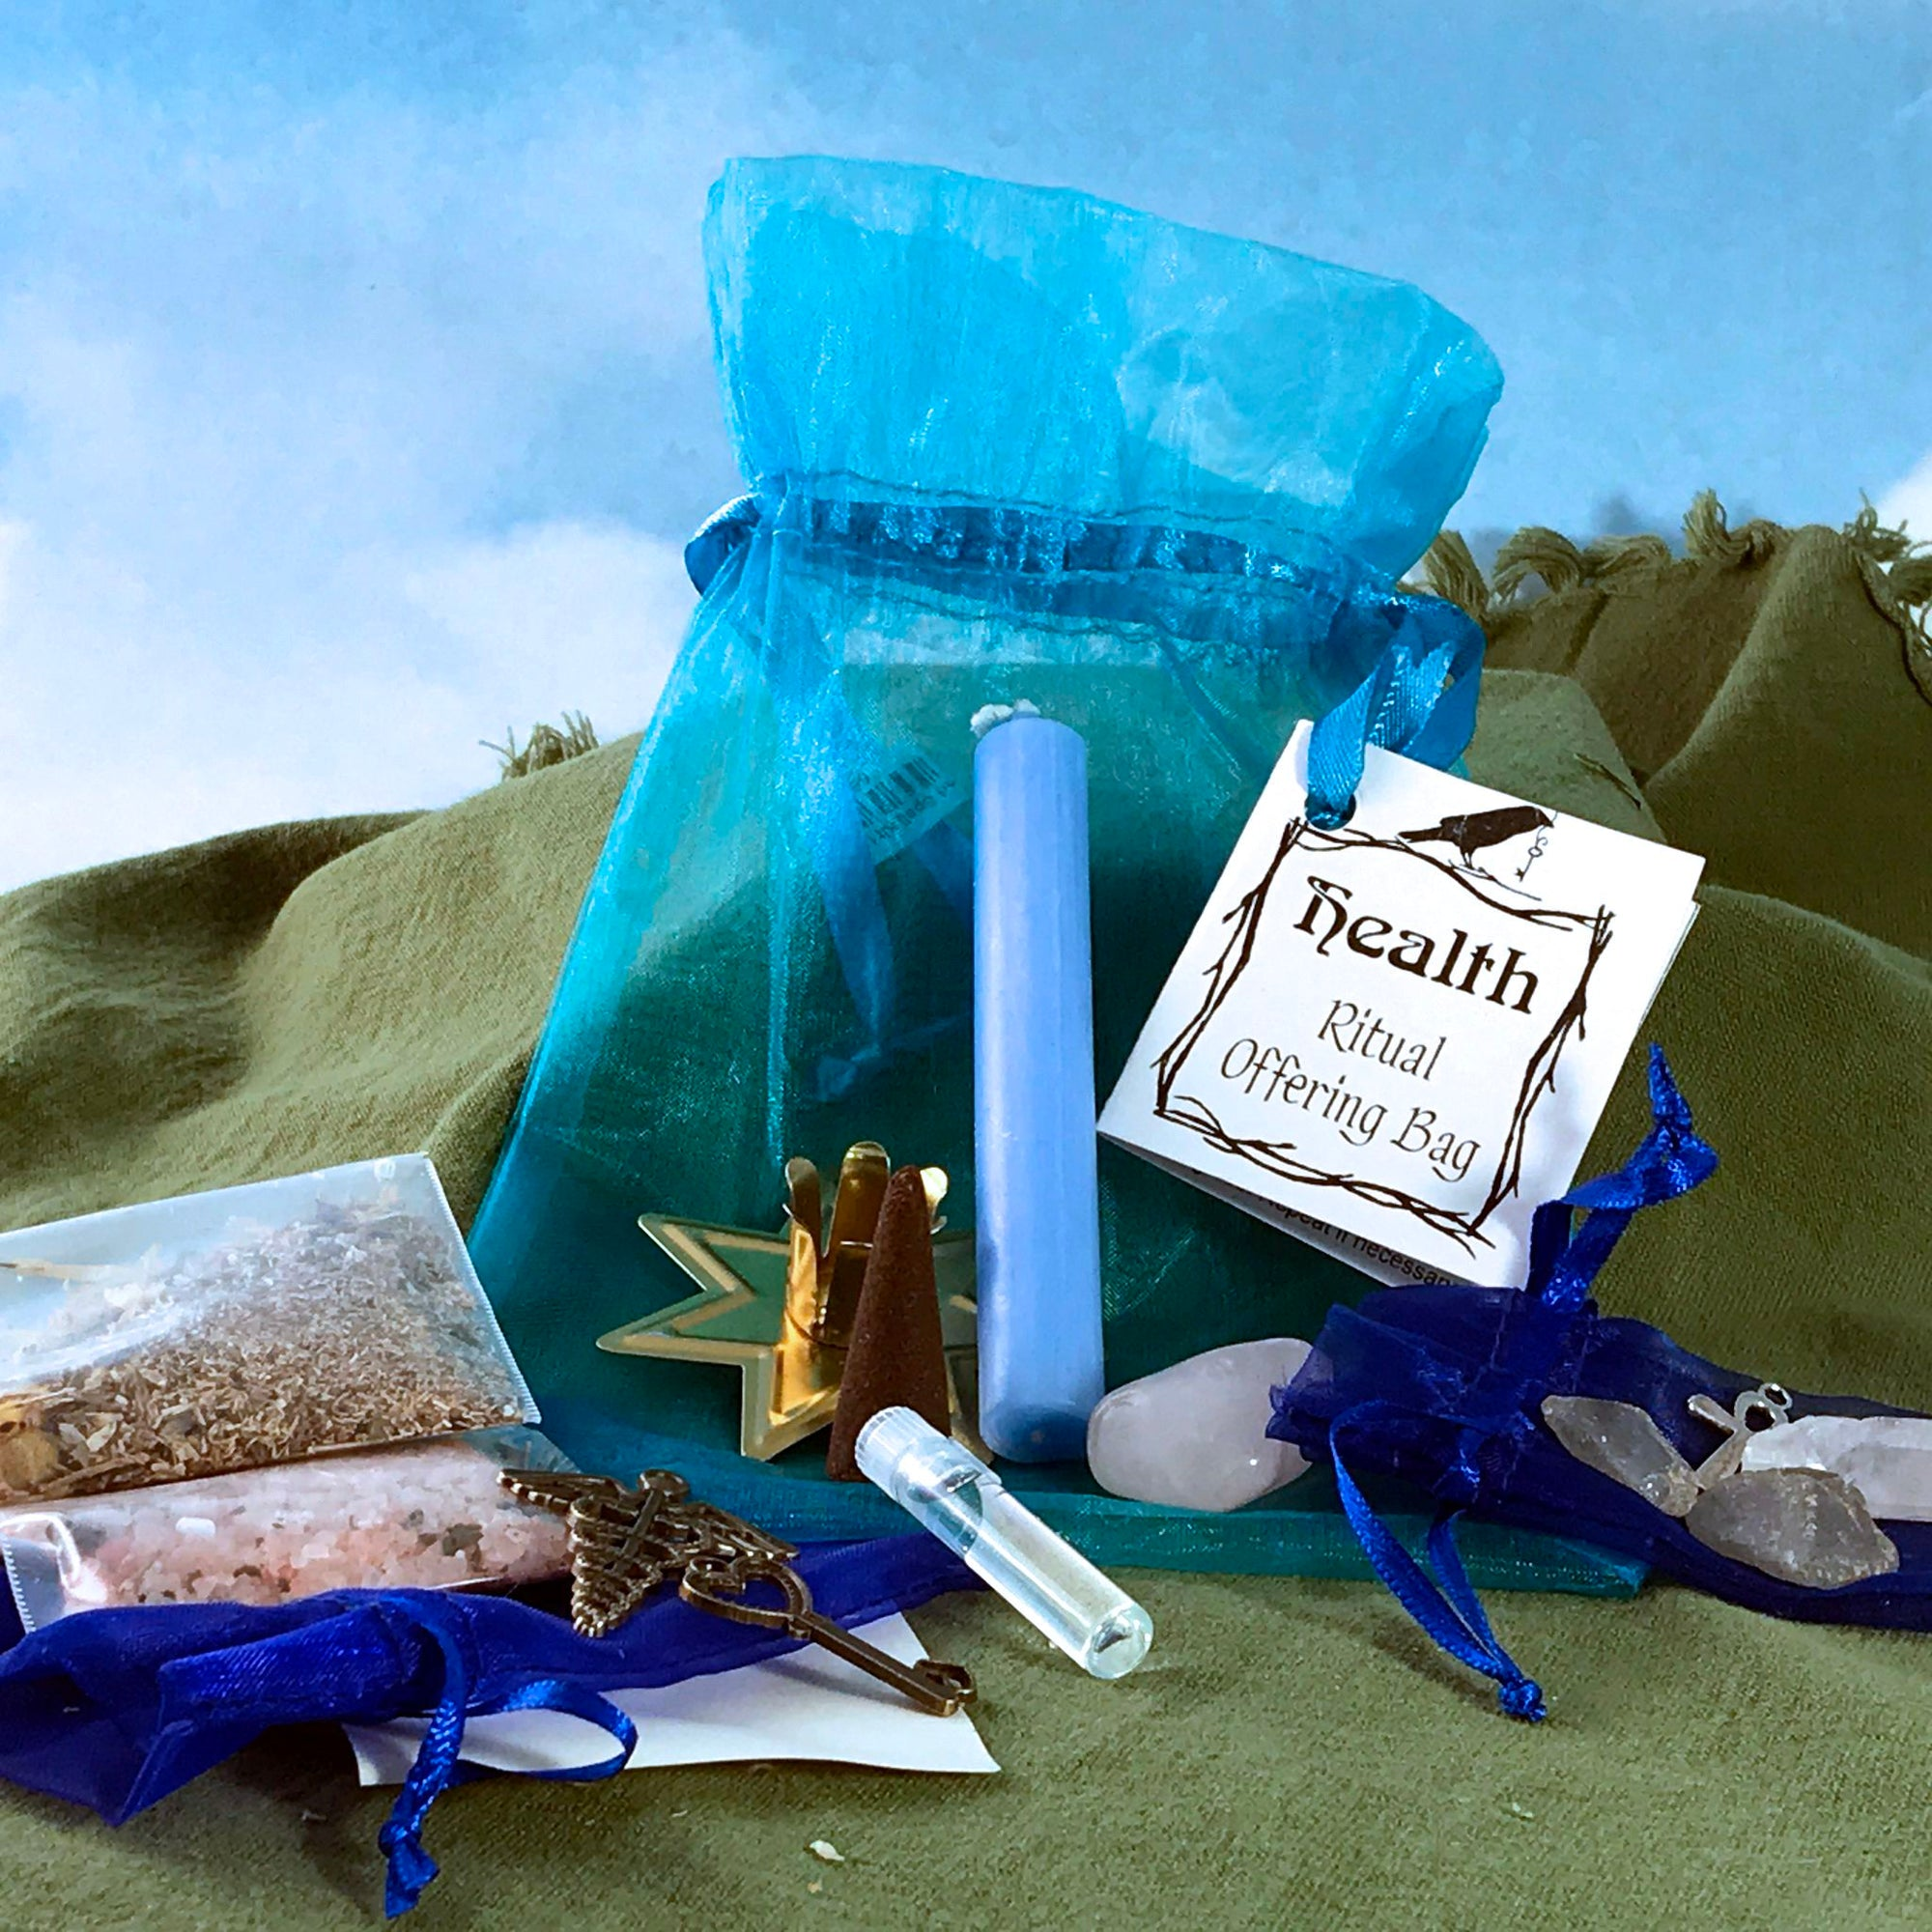 Health Offering & Spell Kit